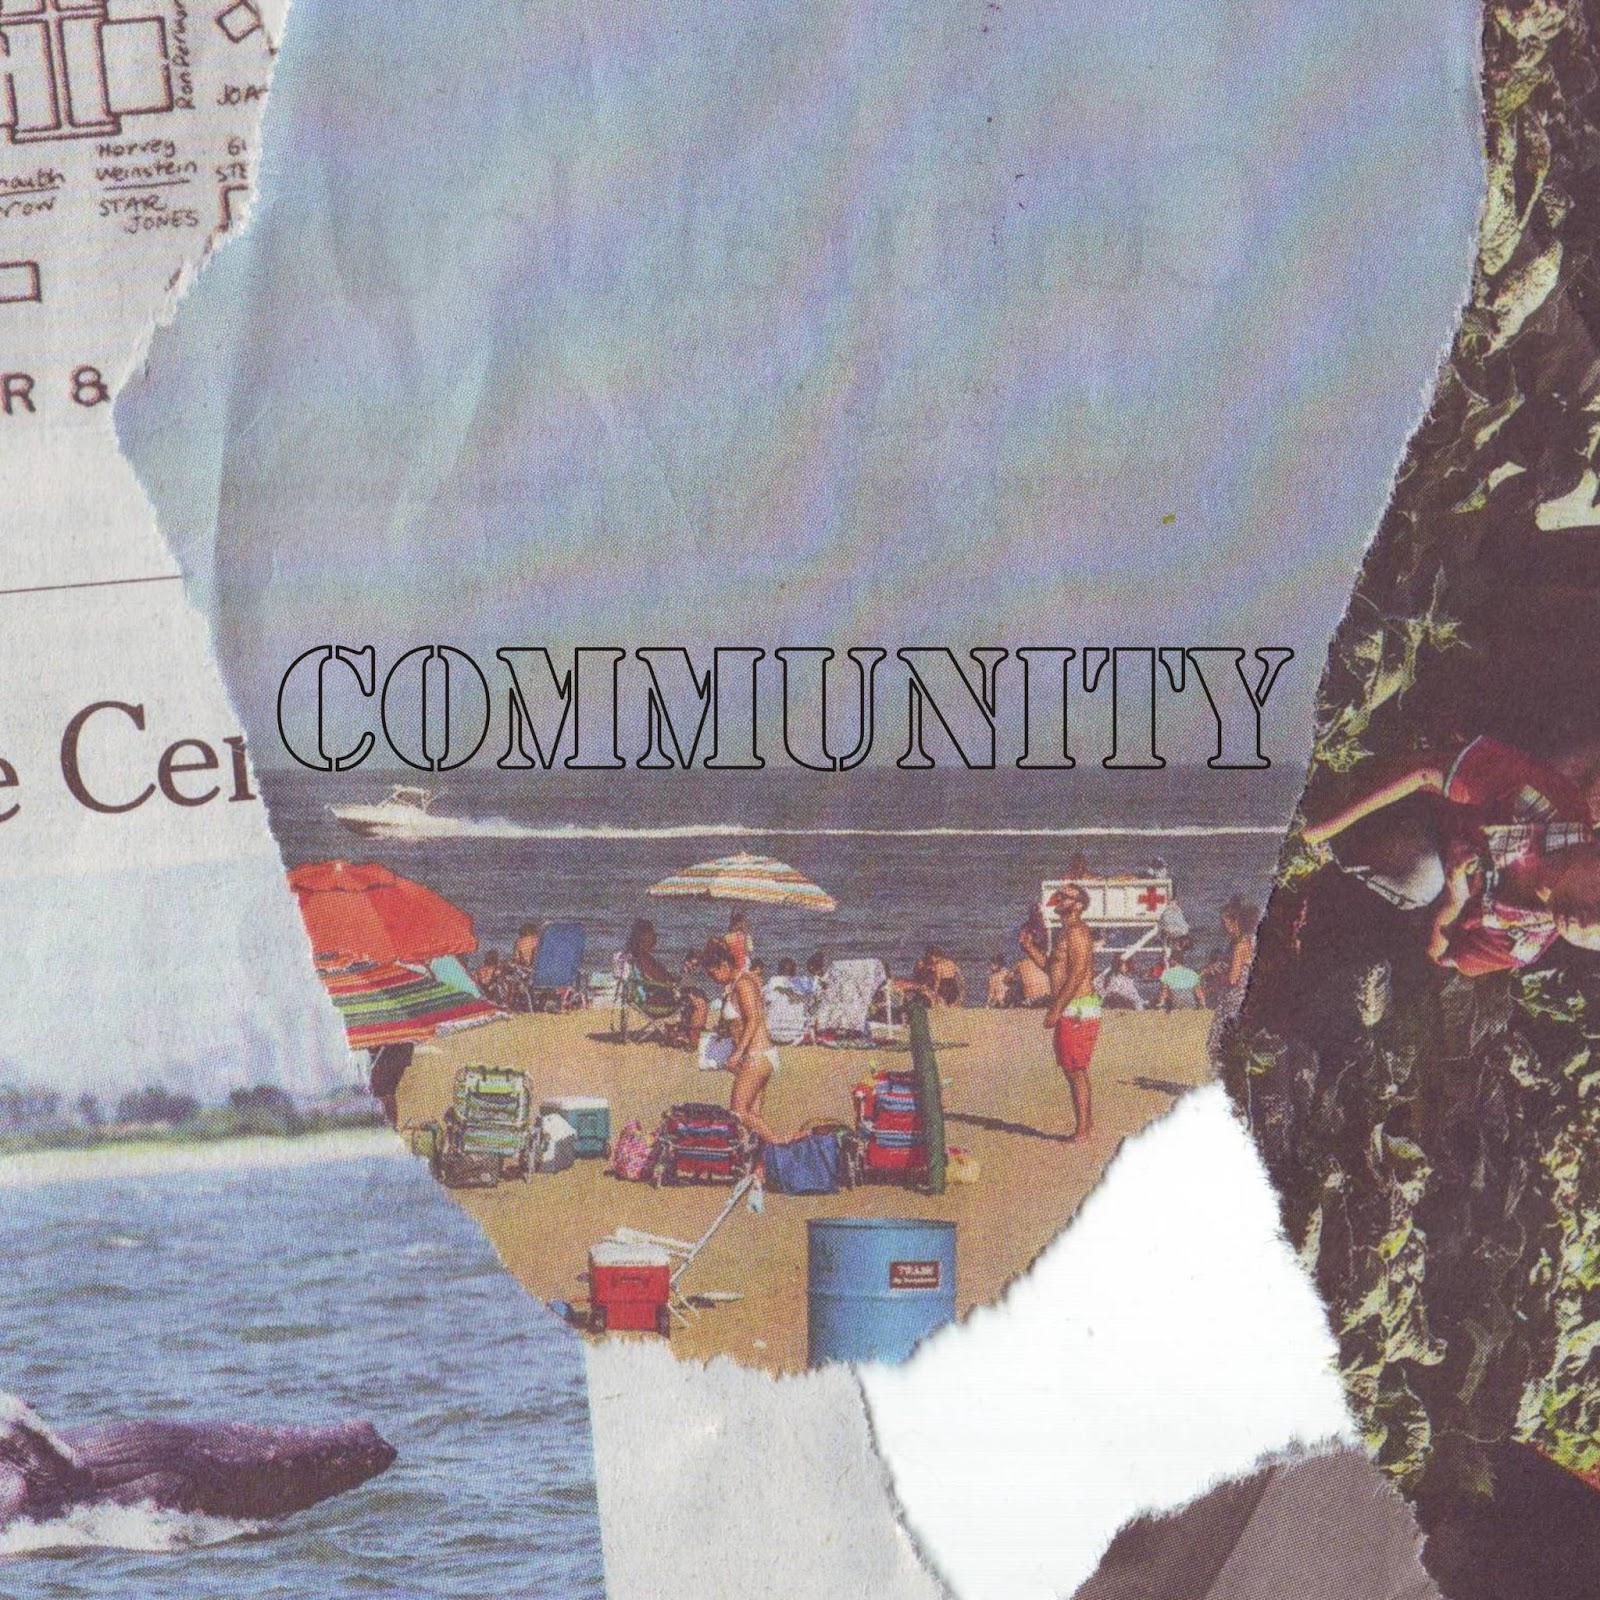 6. Graham Lambkin - Community [Kye]